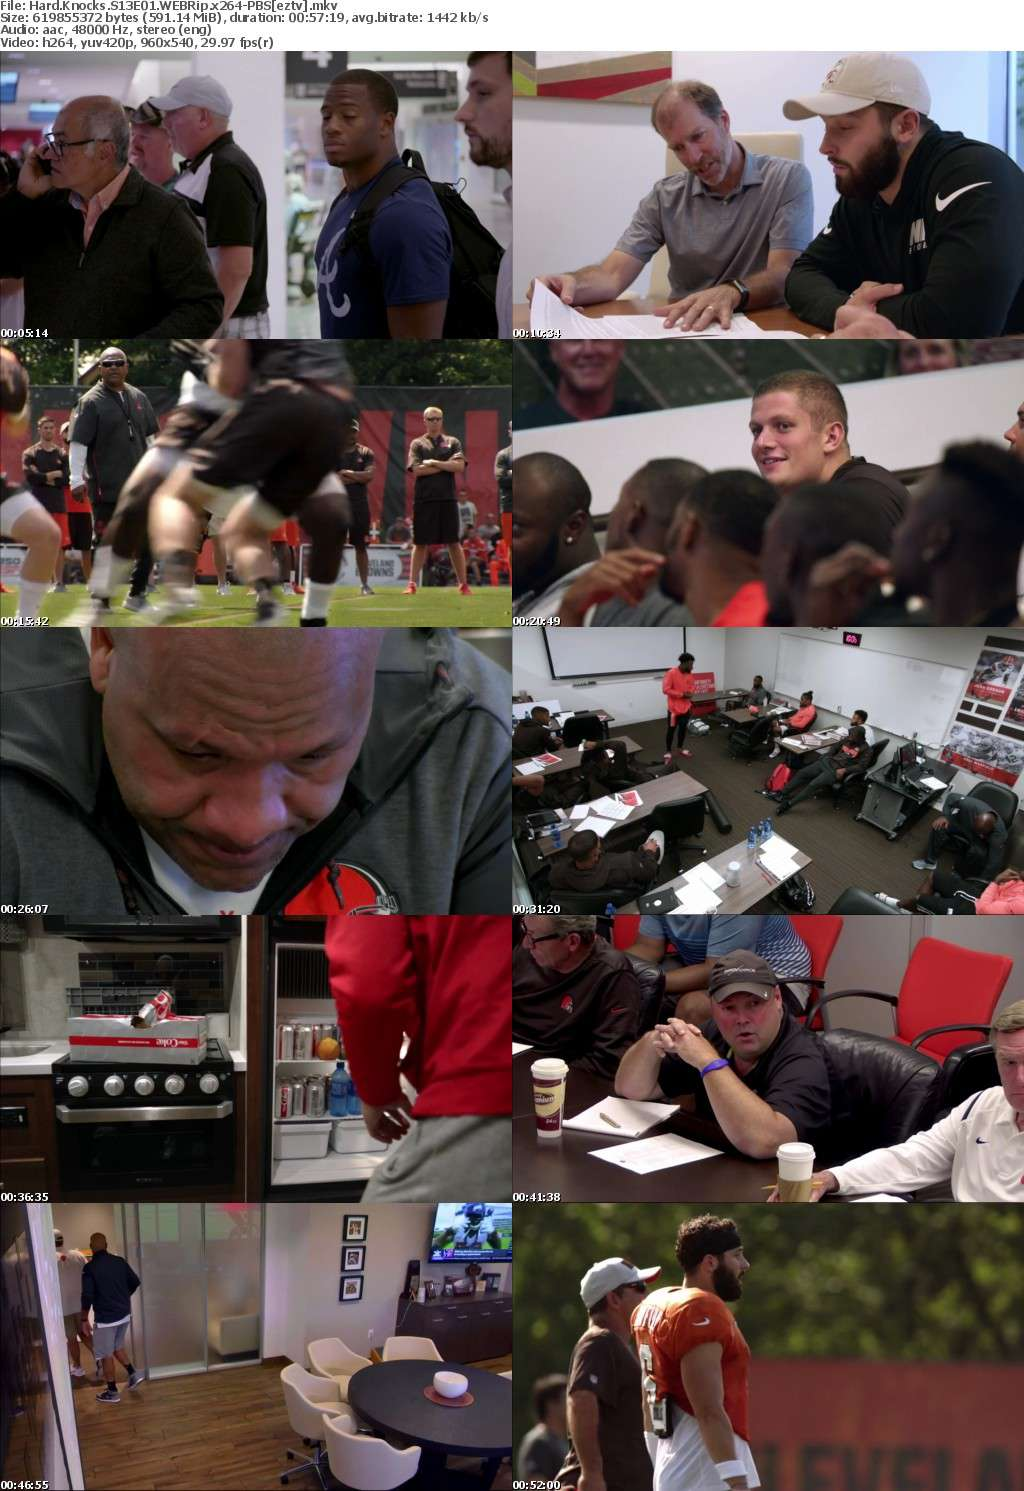 Hard Knocks S13E01 WEBRip x264-PBS